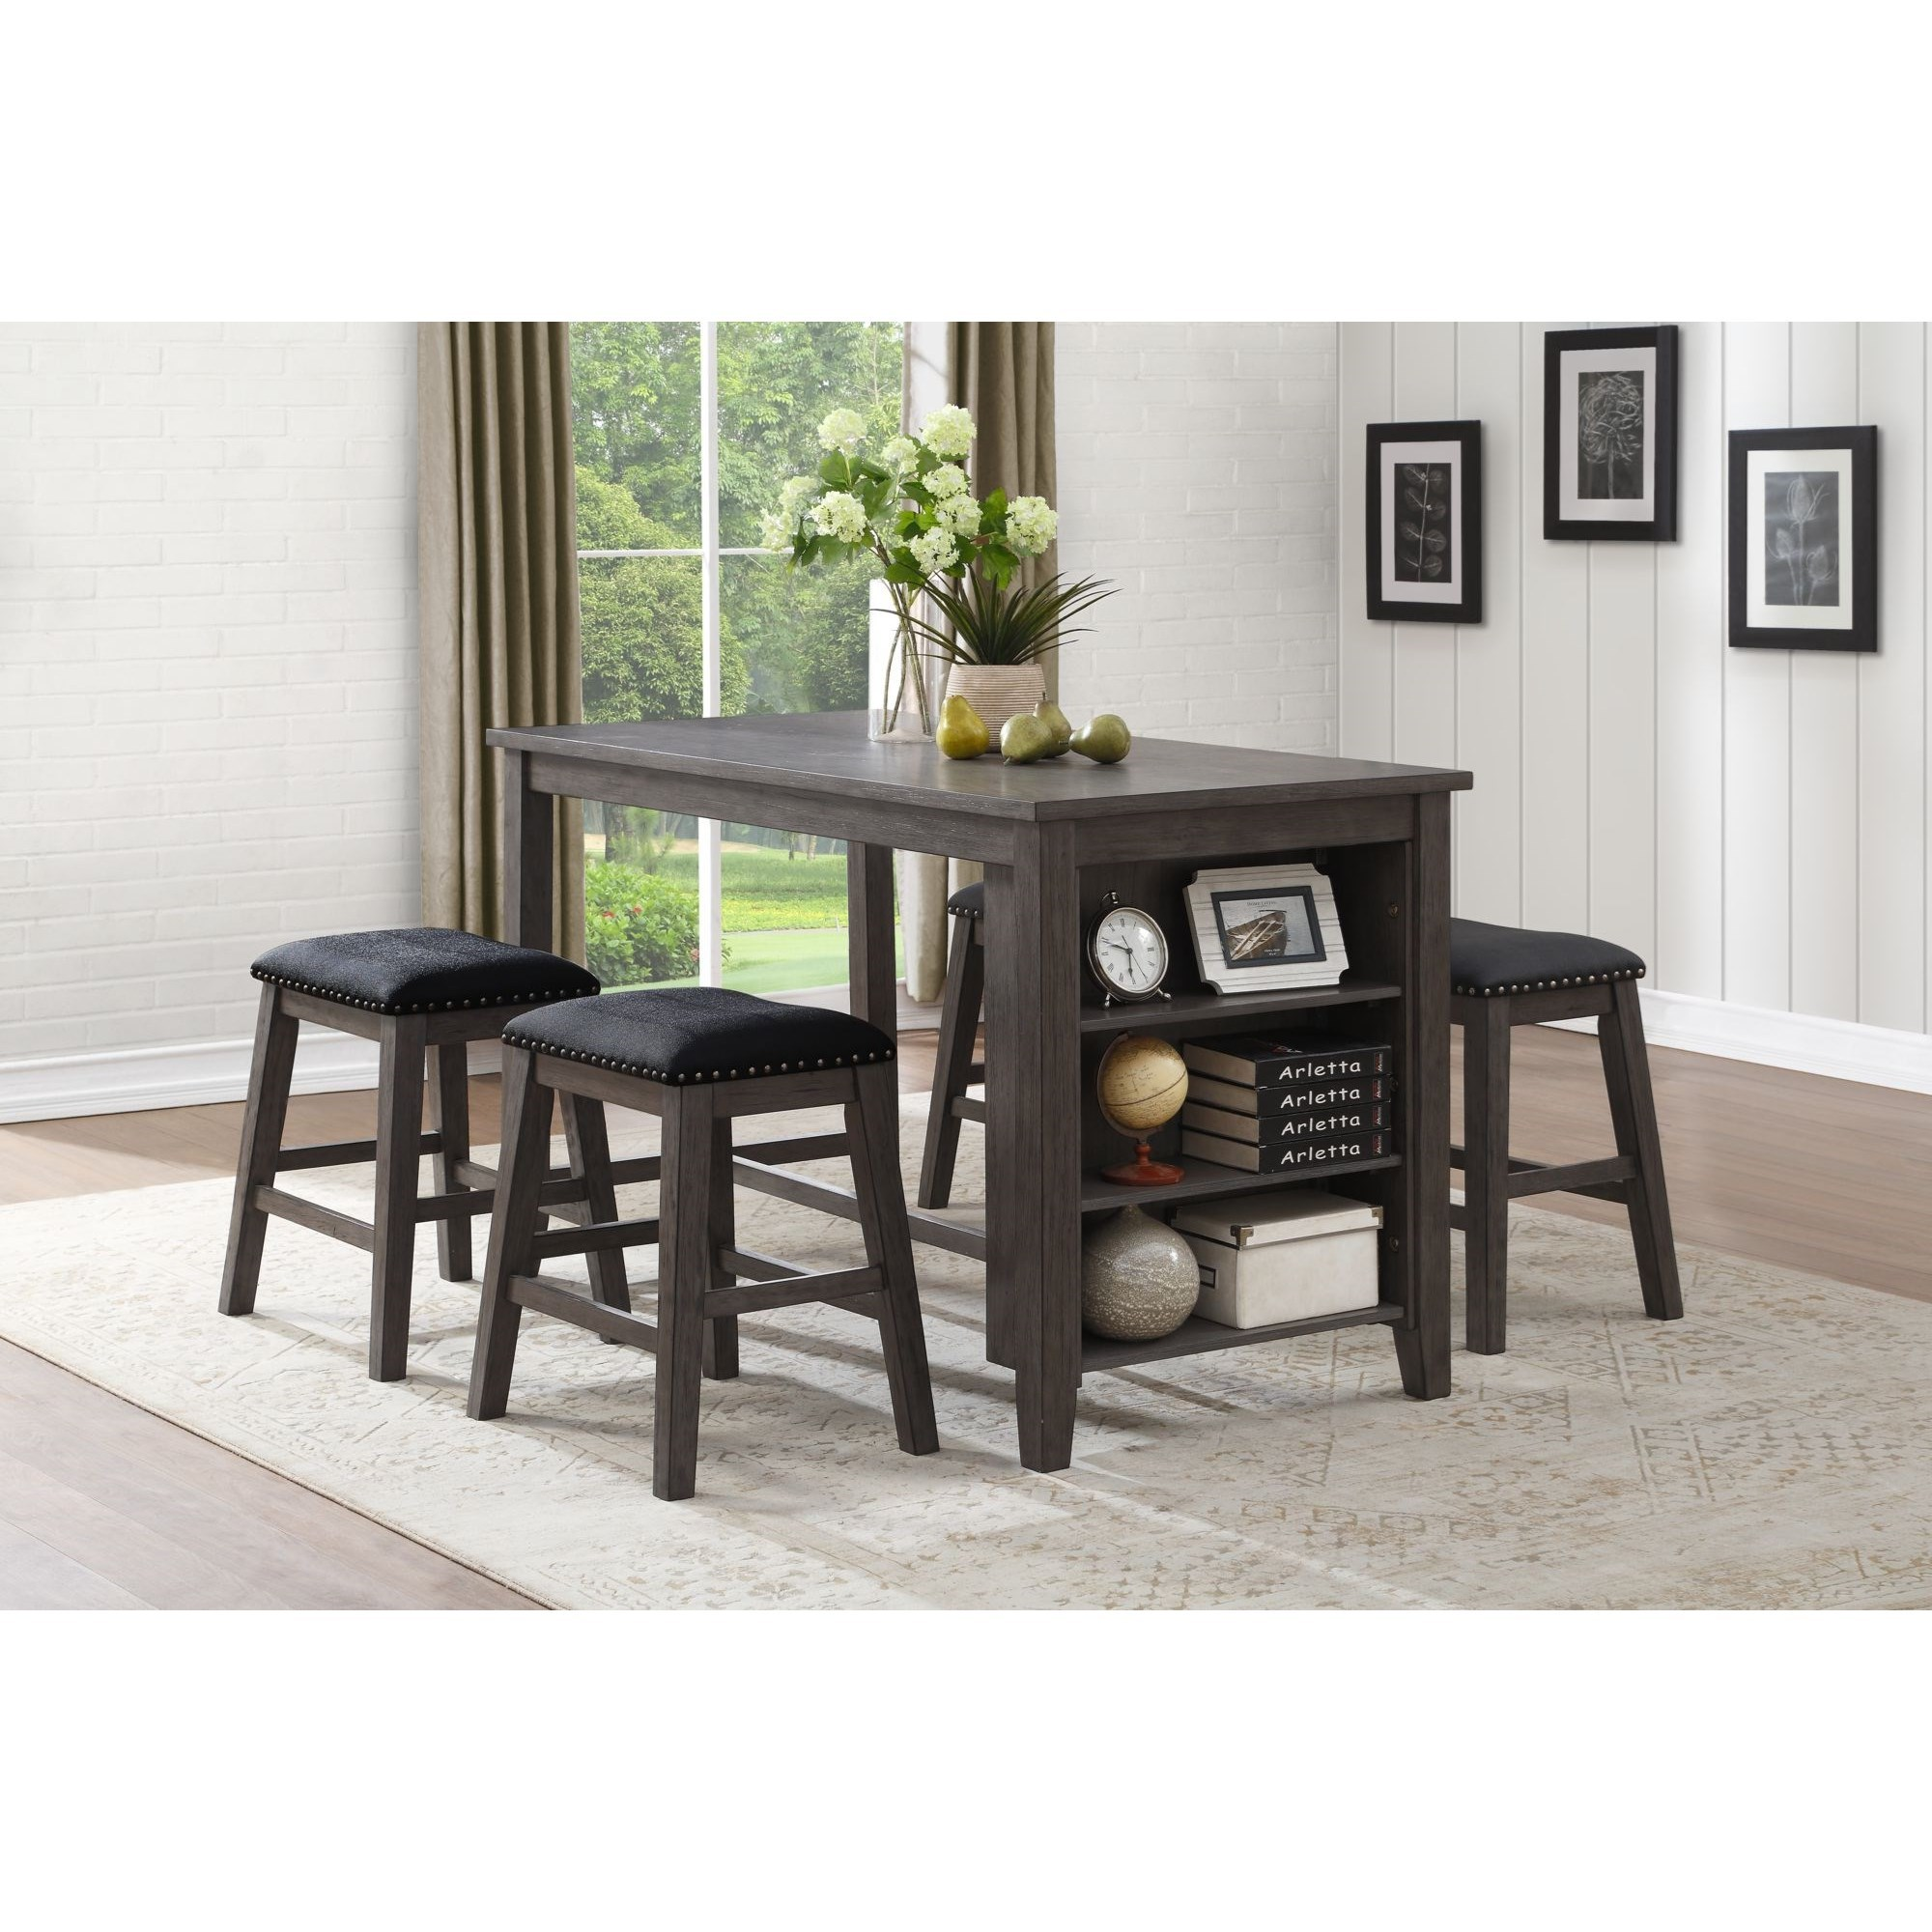 Homelegance 5603 Counter Height Table and Chair Set - Item Number: 5603-36+4x24